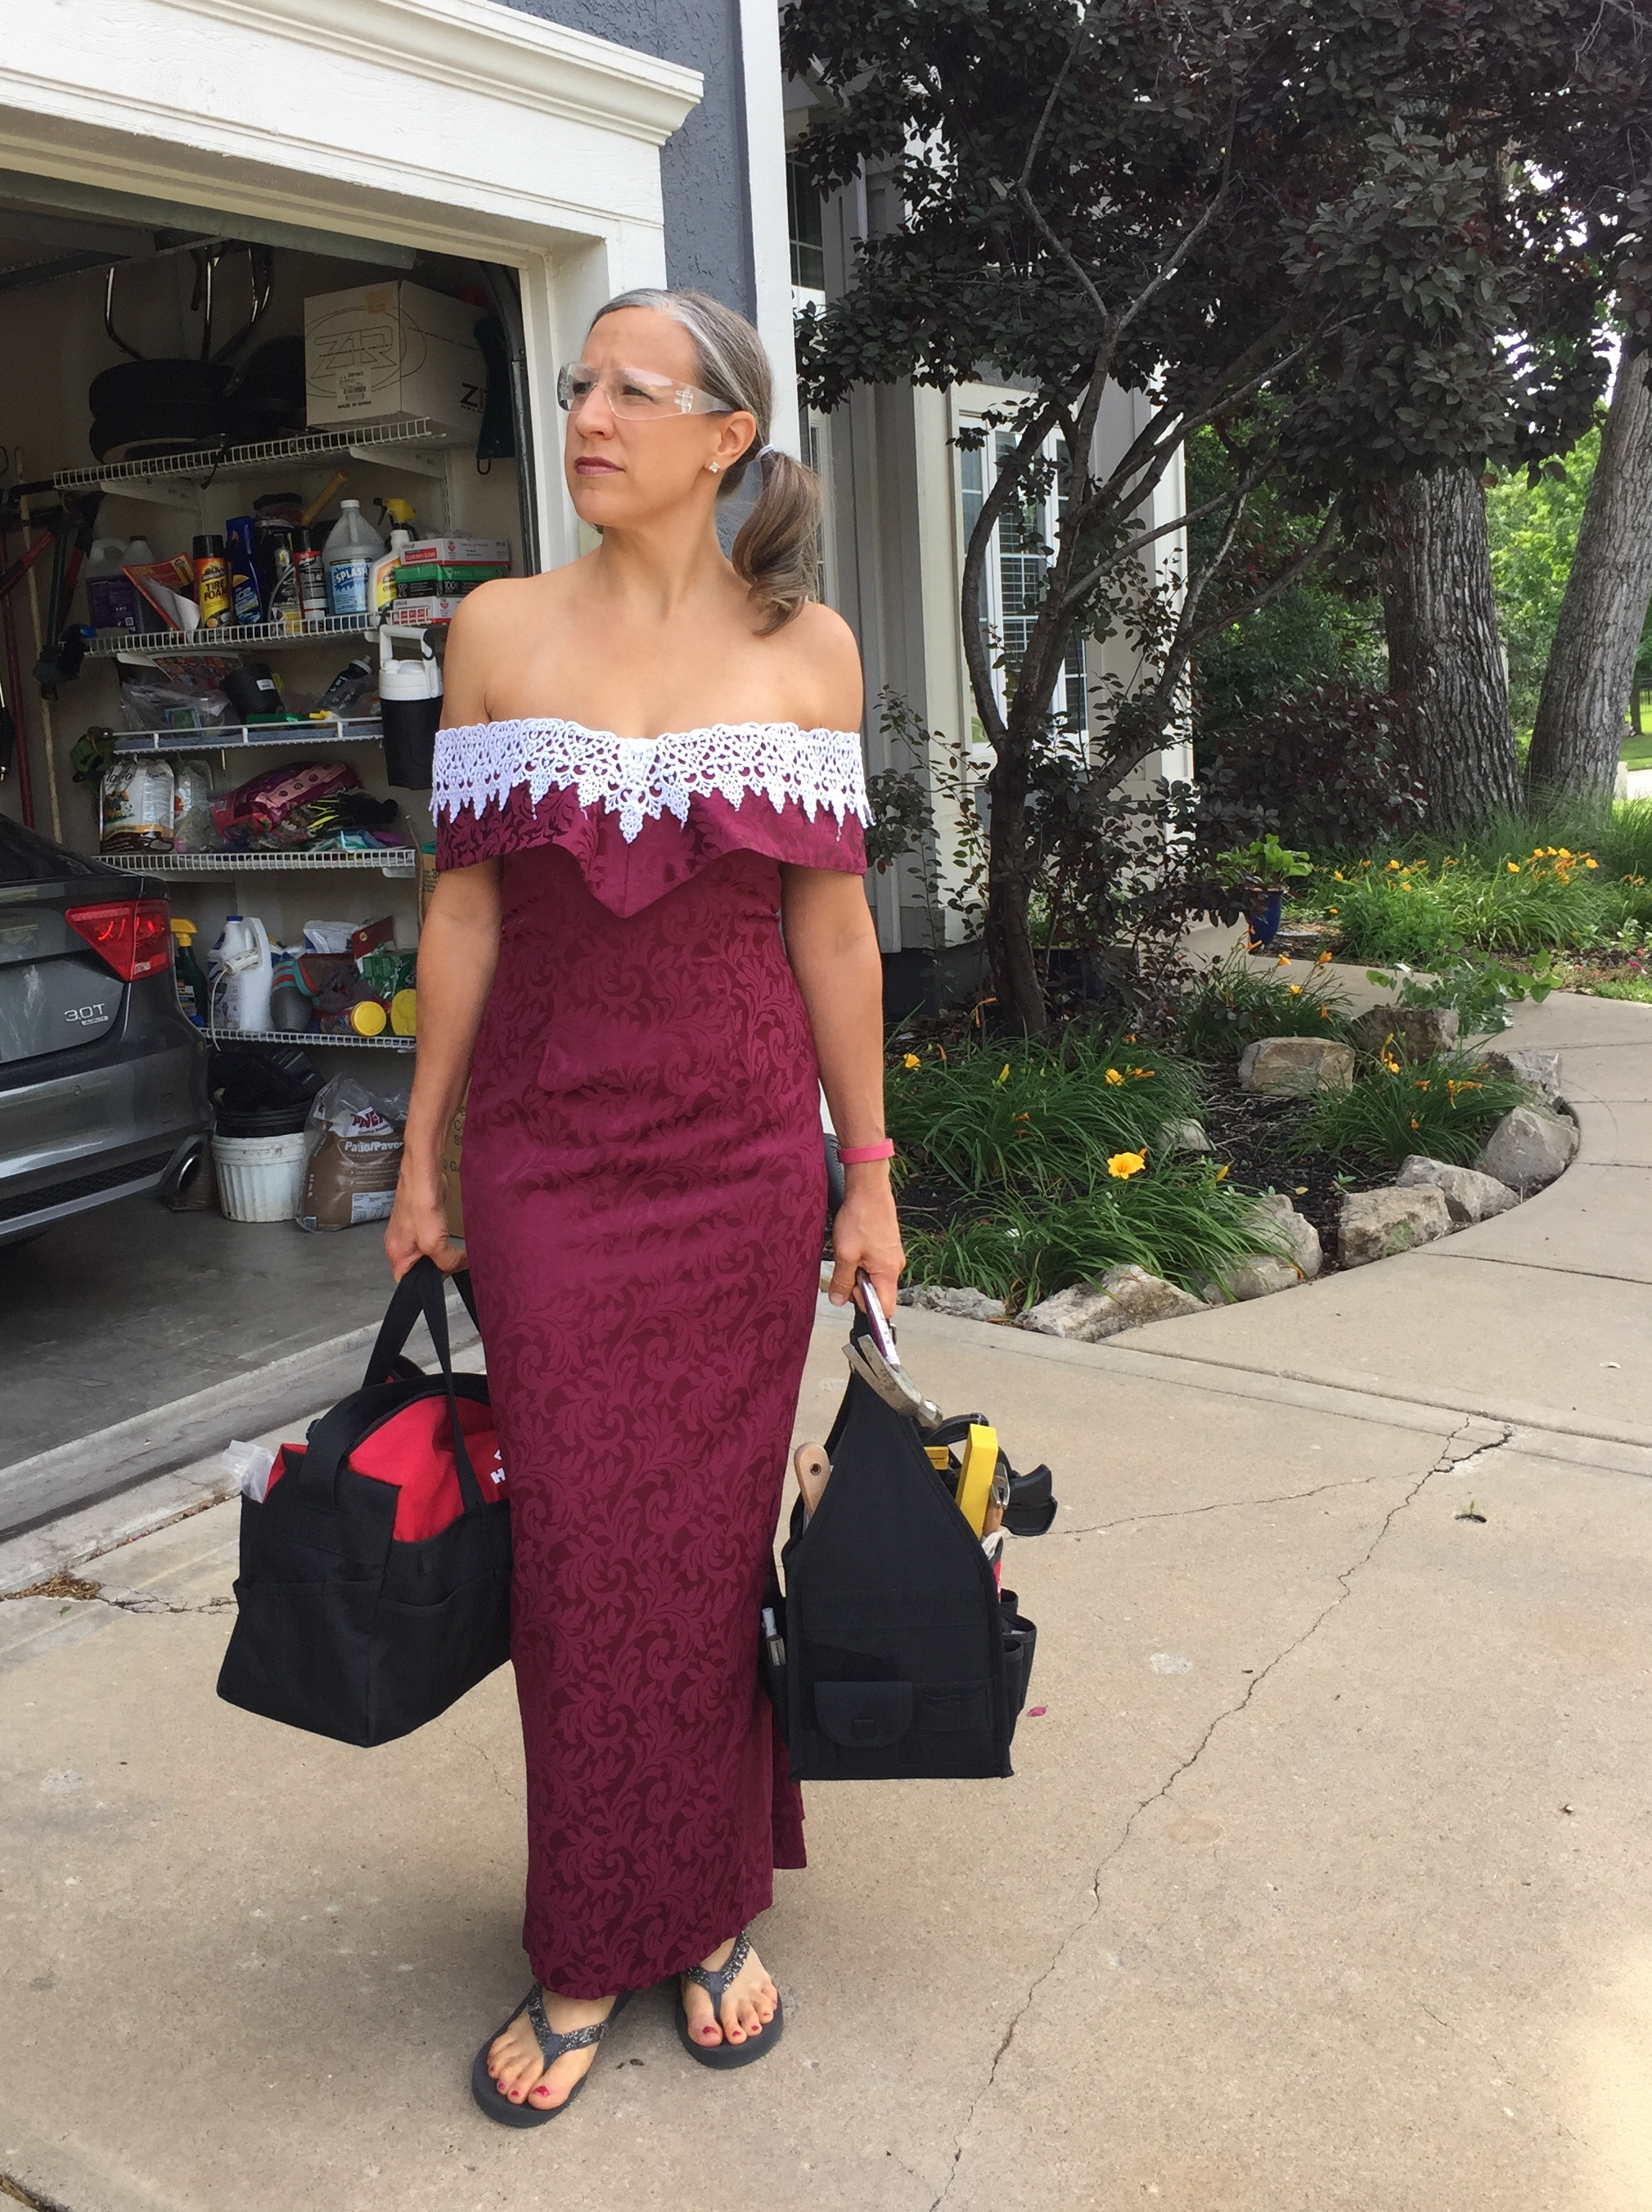 The best bridesmaid ever recently repurposed her bridesmaid dress from a 1995 wedding, and the photos went viral. )Photo courtesy of Tammi Sauer)